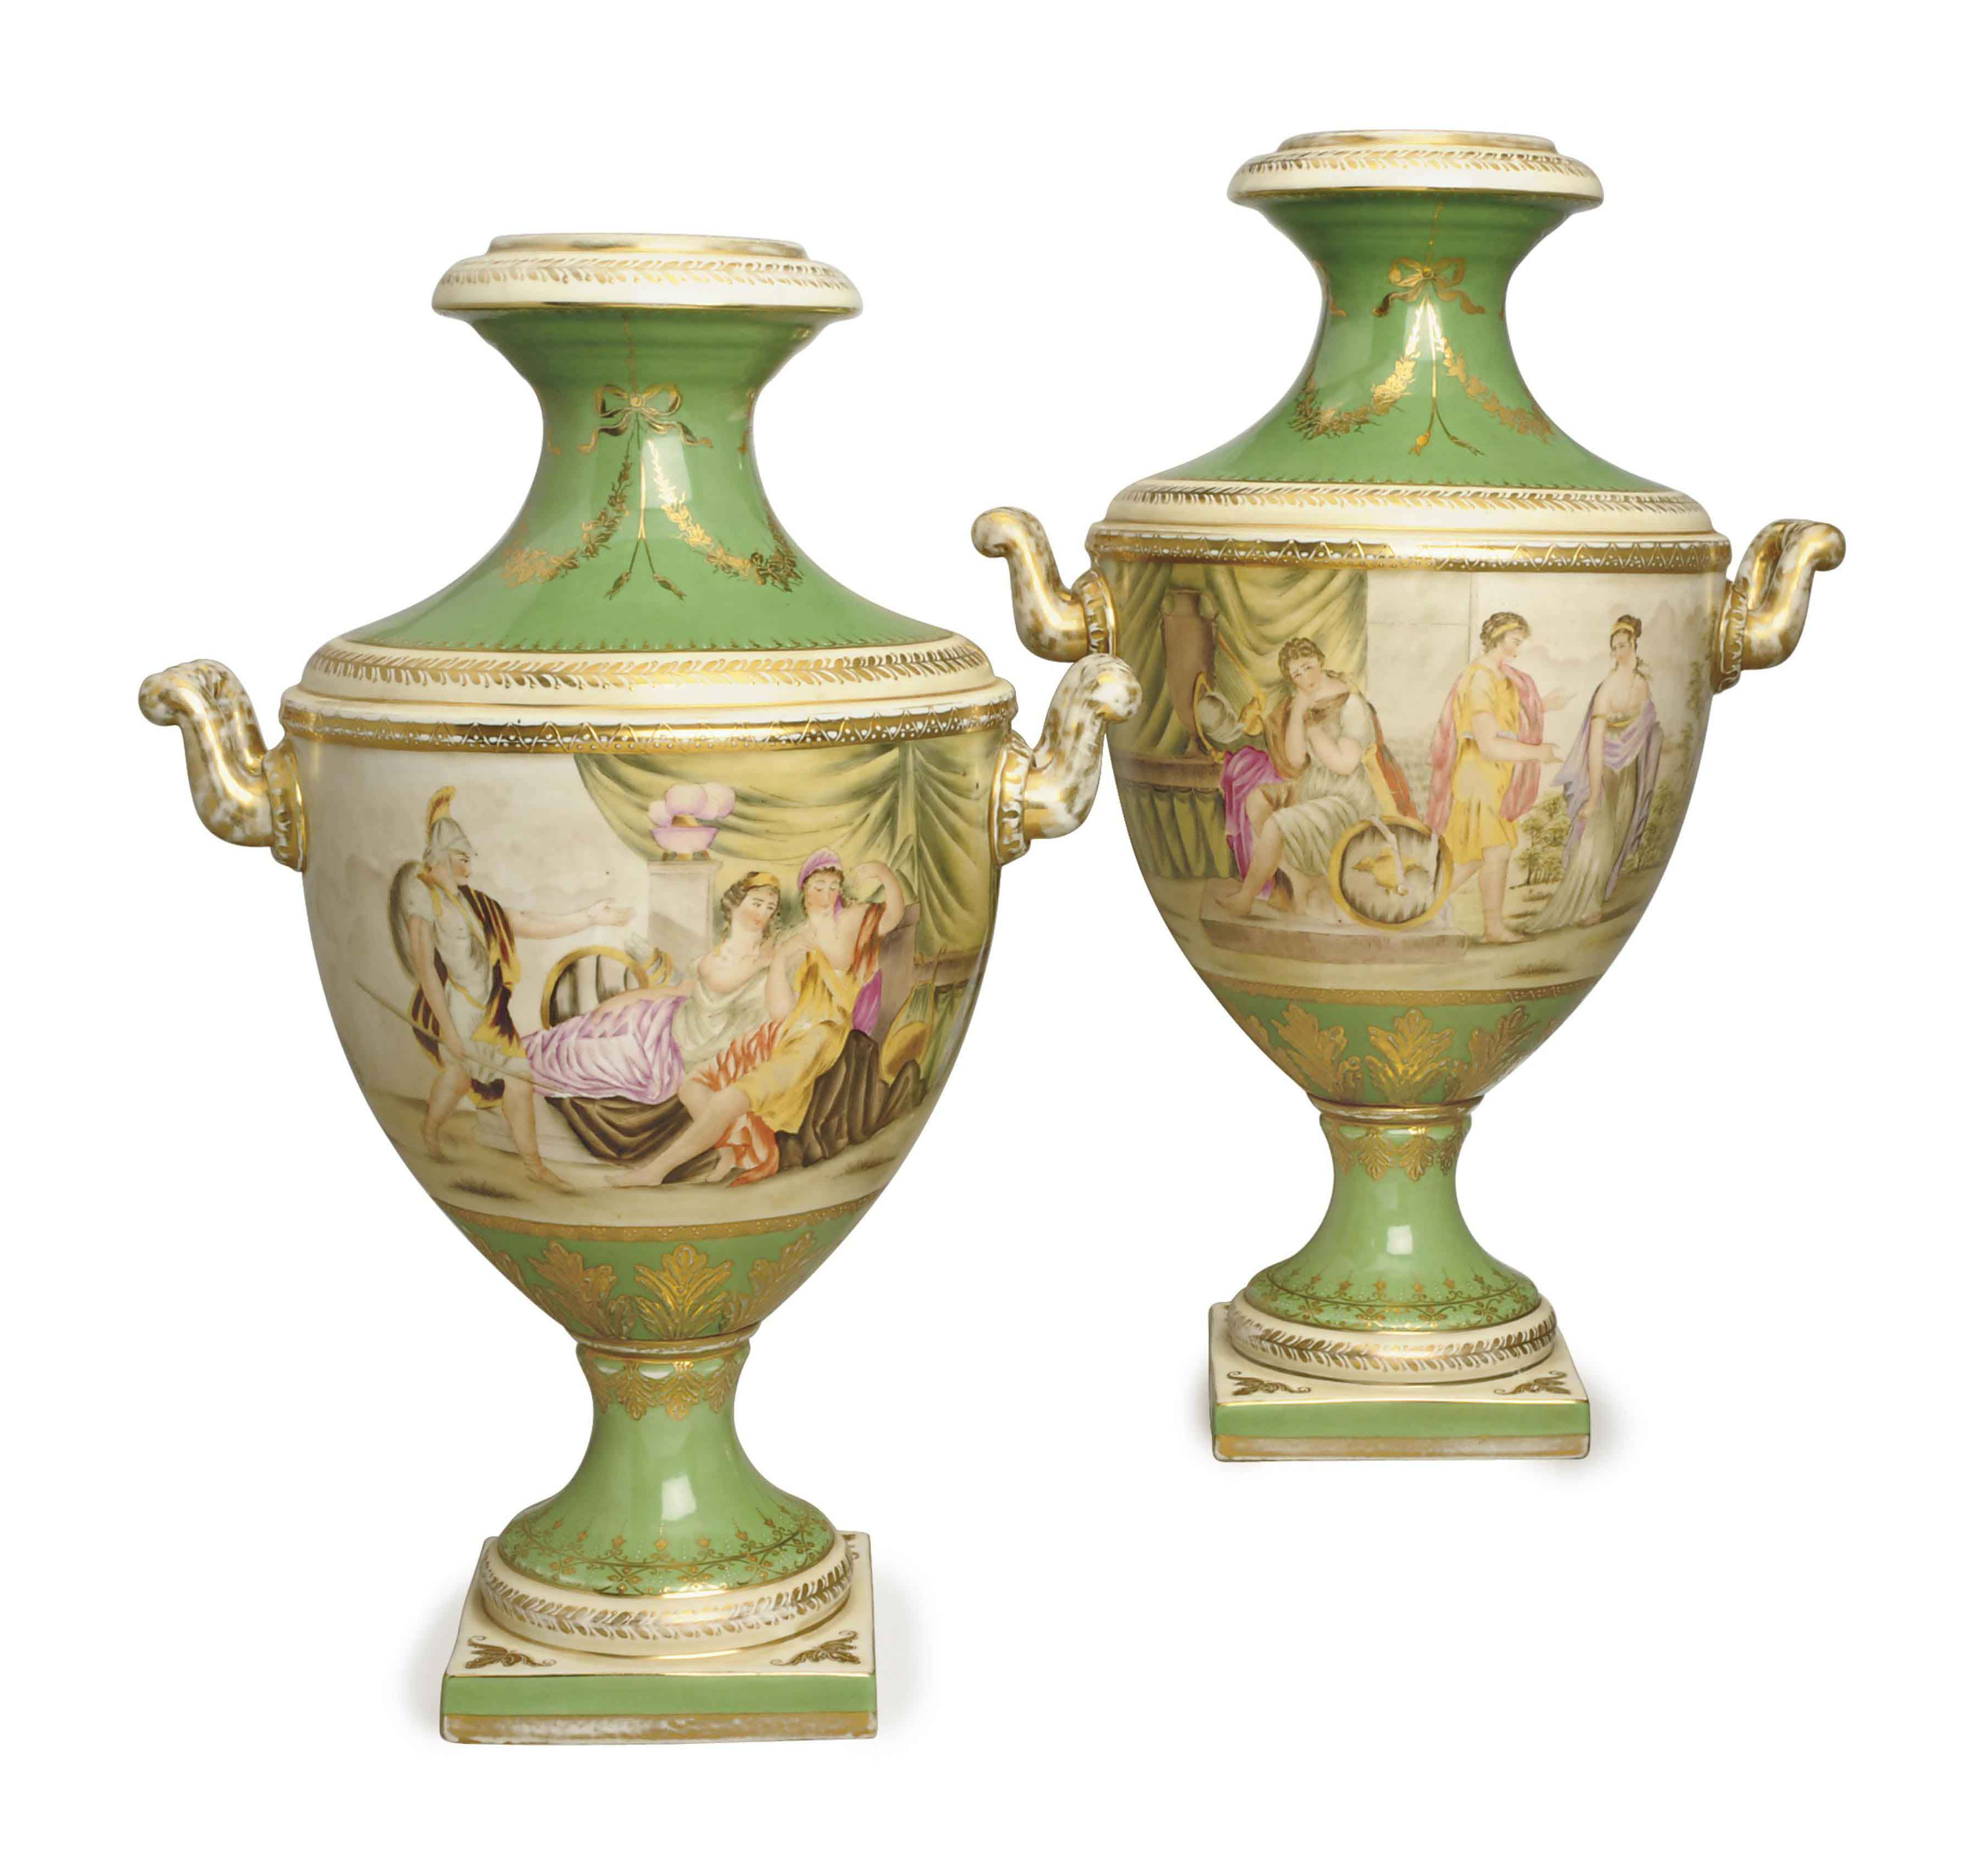 A PAIR OF APPLE GREEN GROUND VIENNA-STYLE VASES,